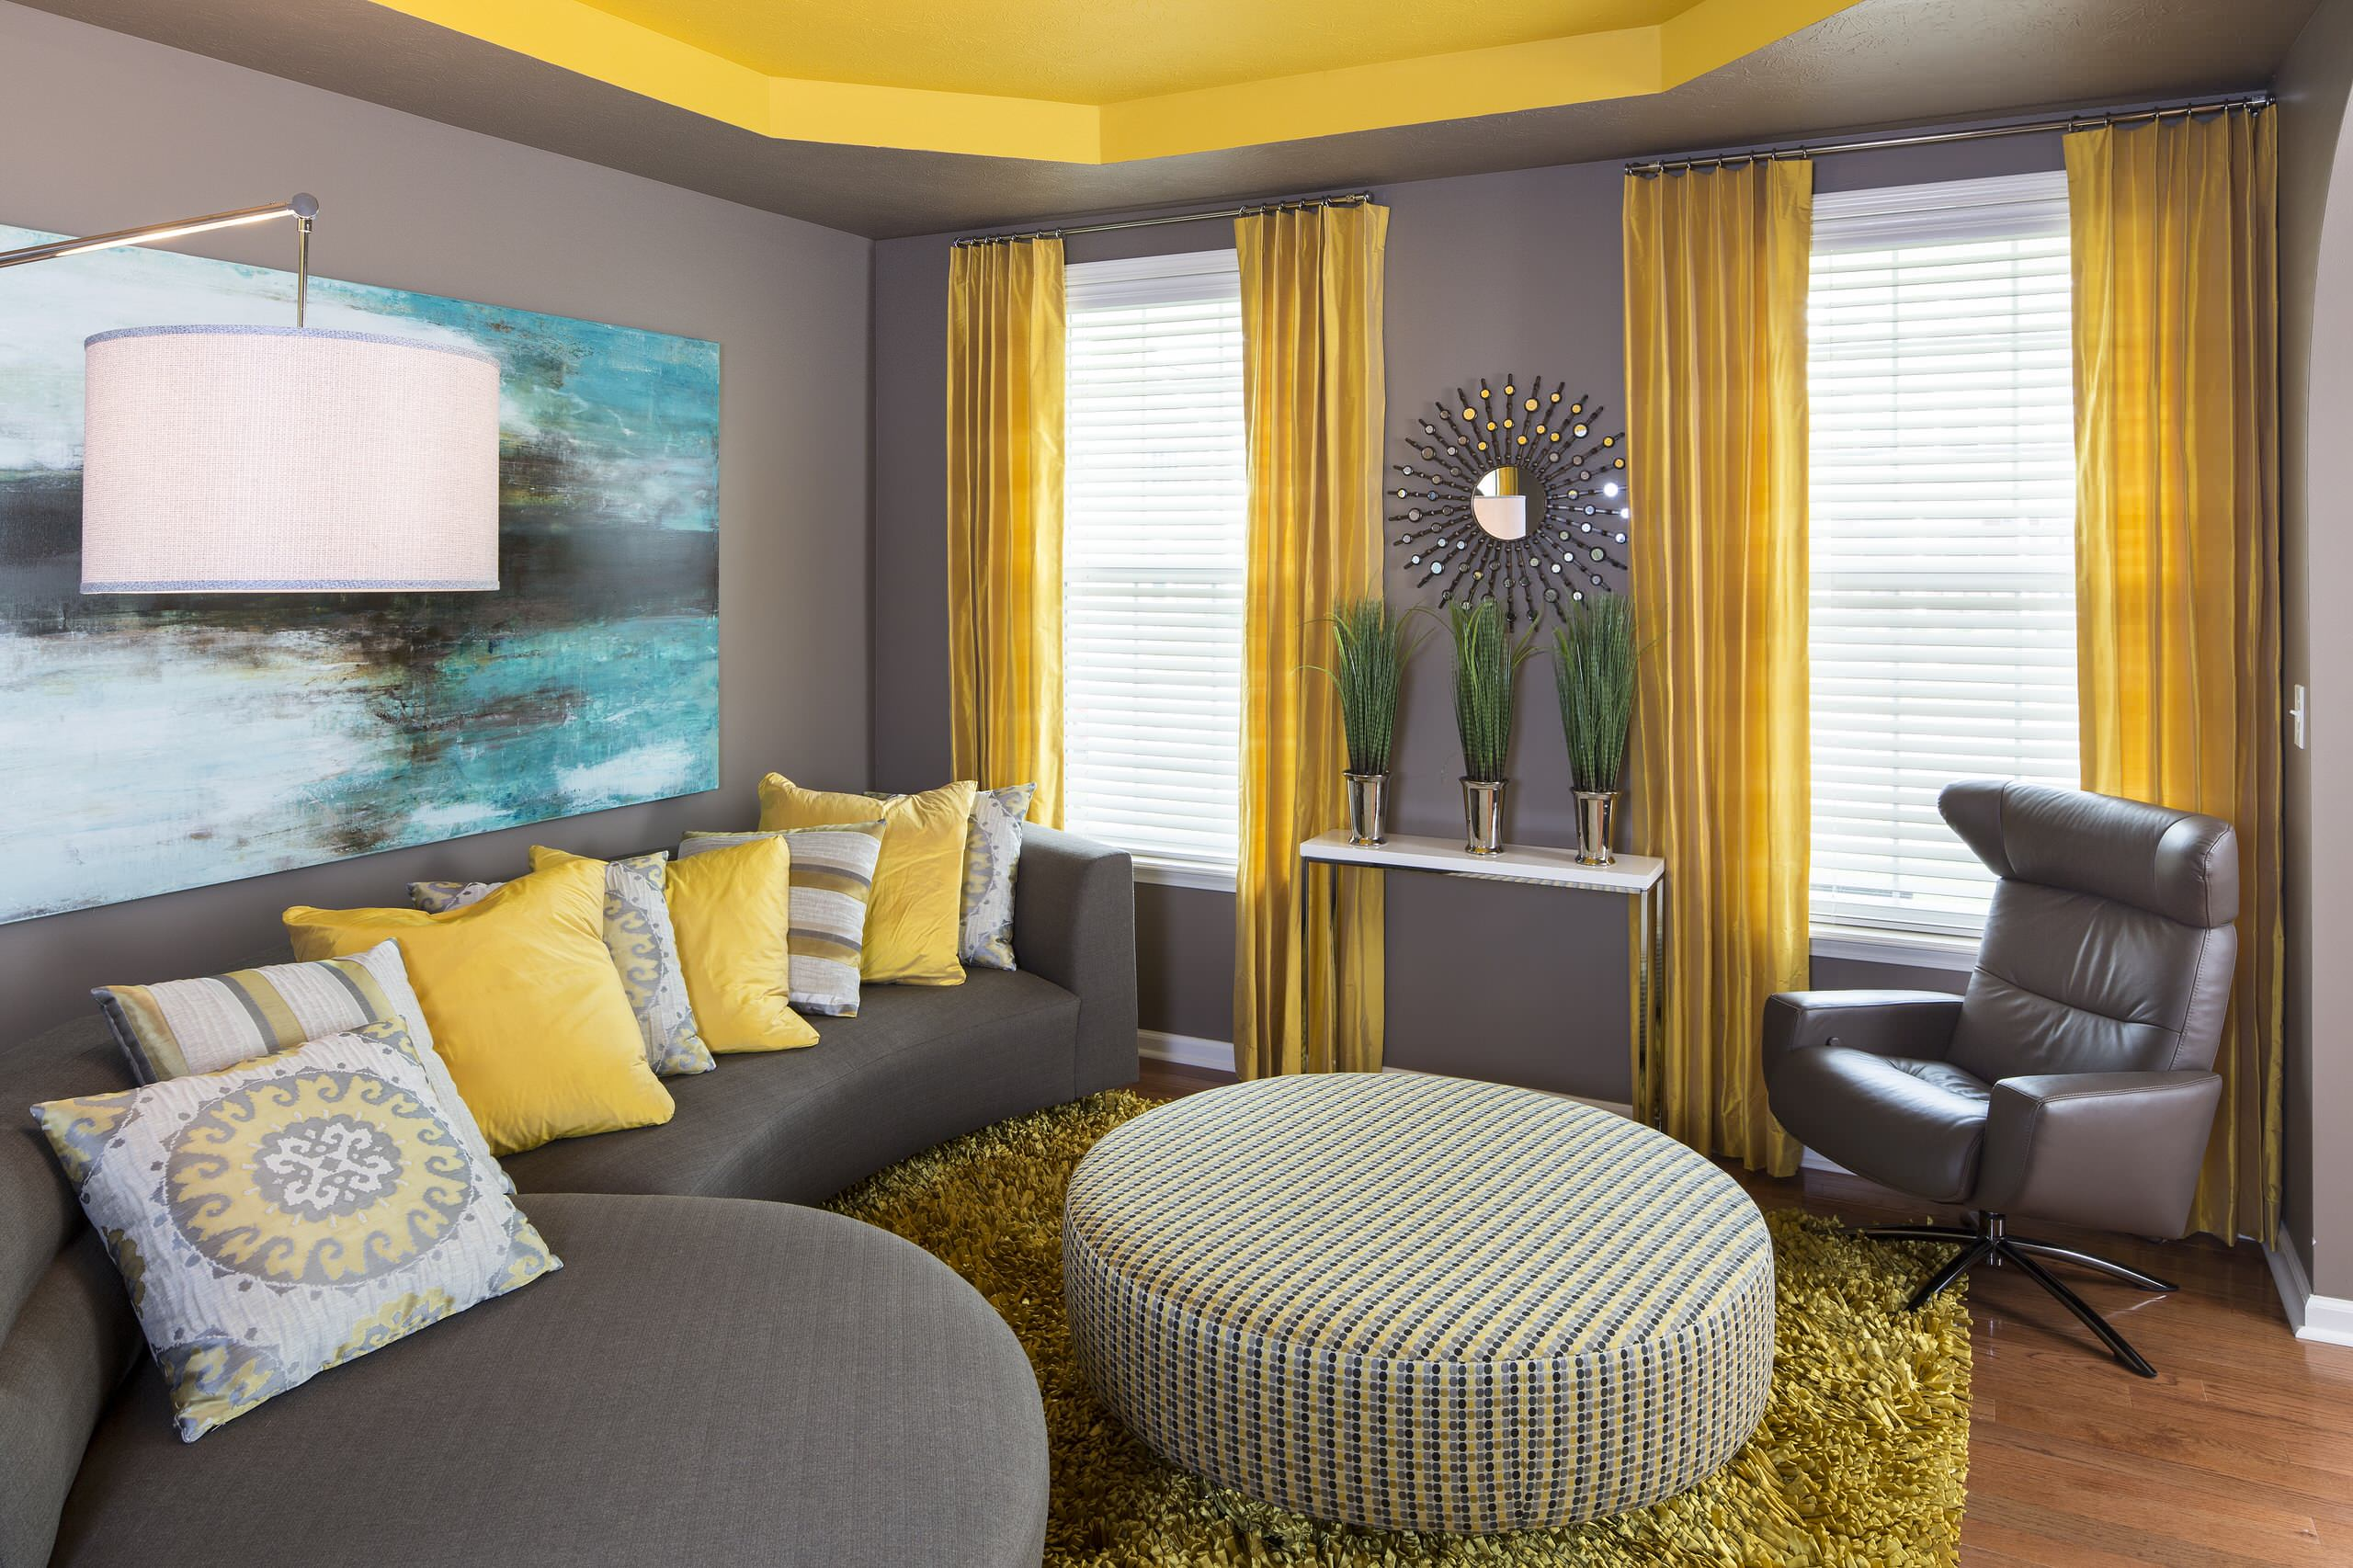 75 Beautiful Yellow Living Room Pictures Ideas February 2021 Houzz